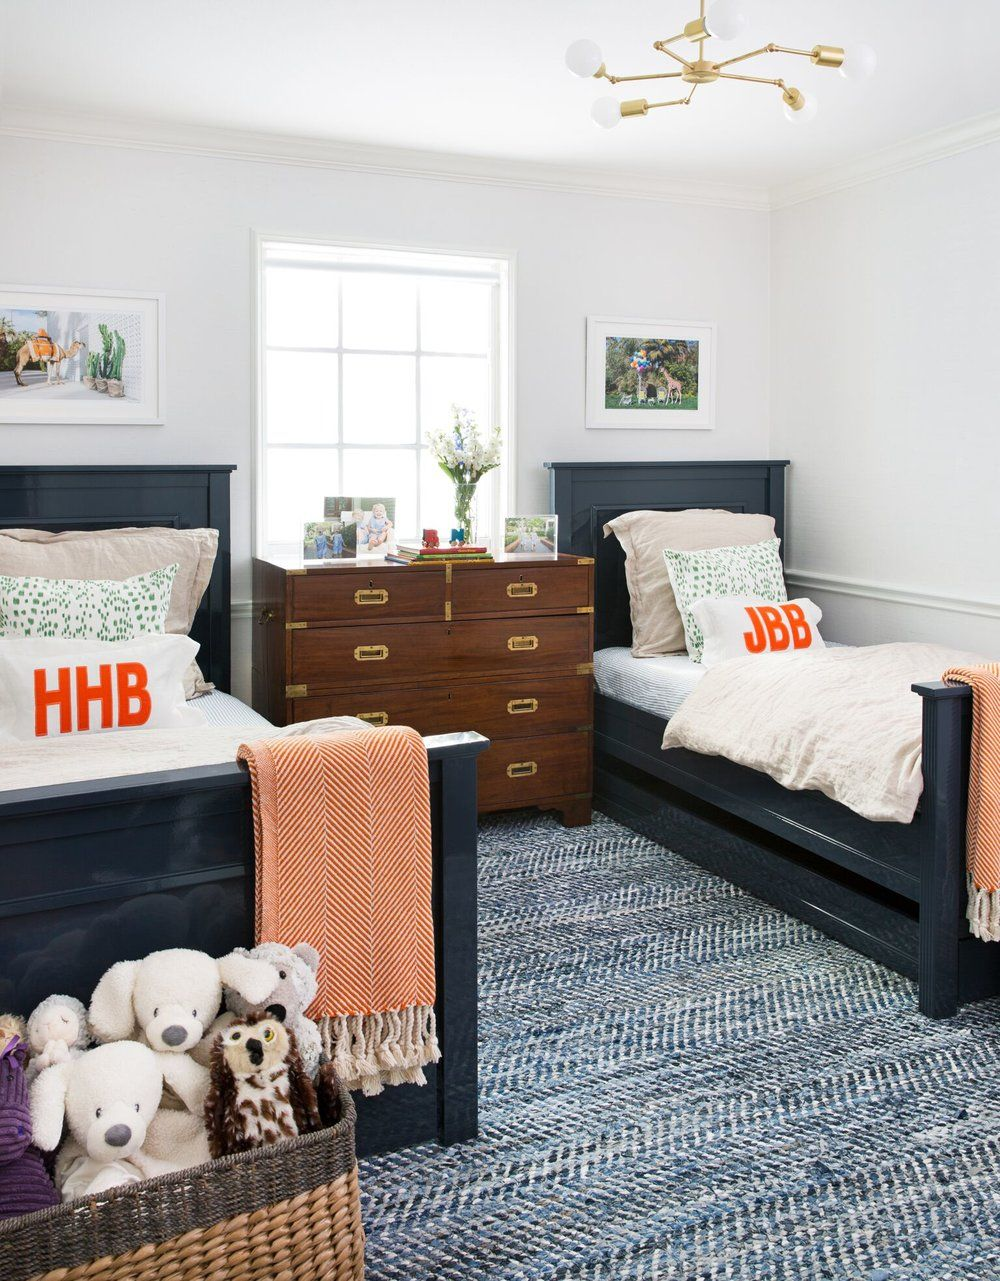 Twin Boys Bedroom Ideas: Double Twin Beds And Patterned Textured Rug